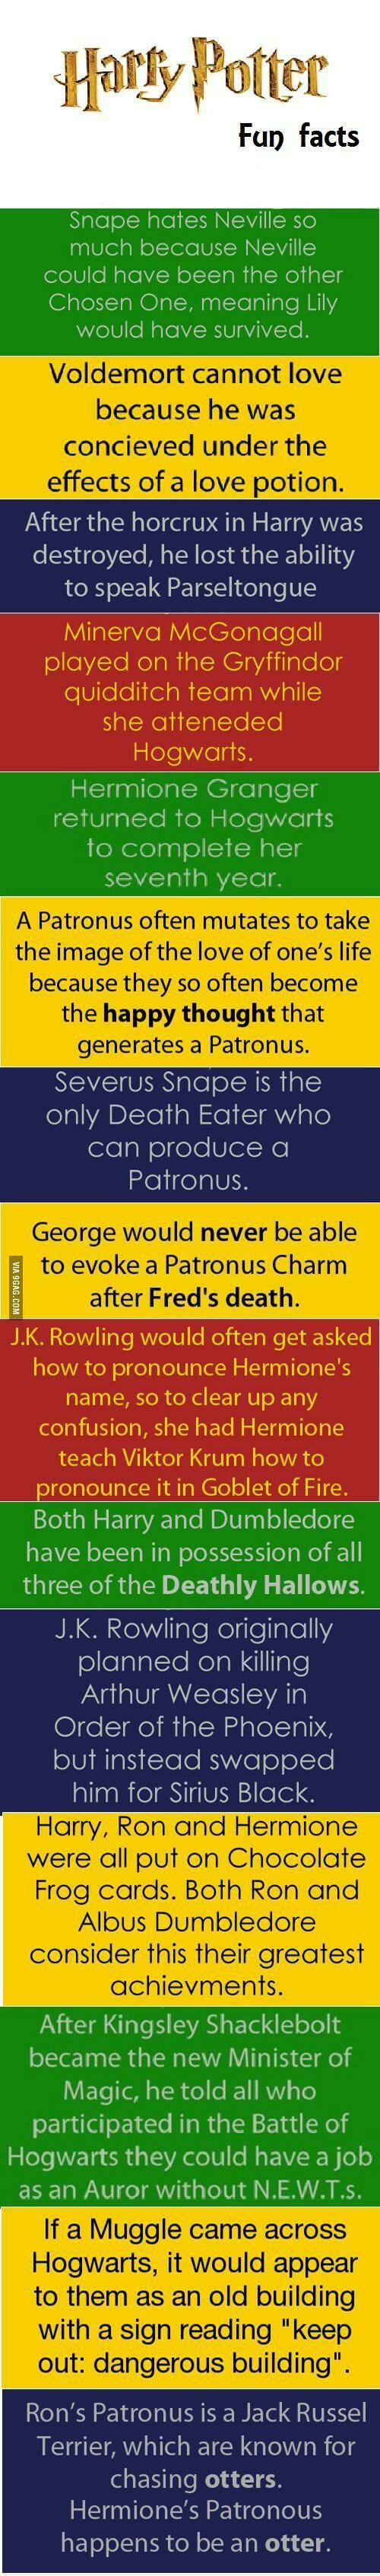 Harry Potter fun facts - www.viralpx.com